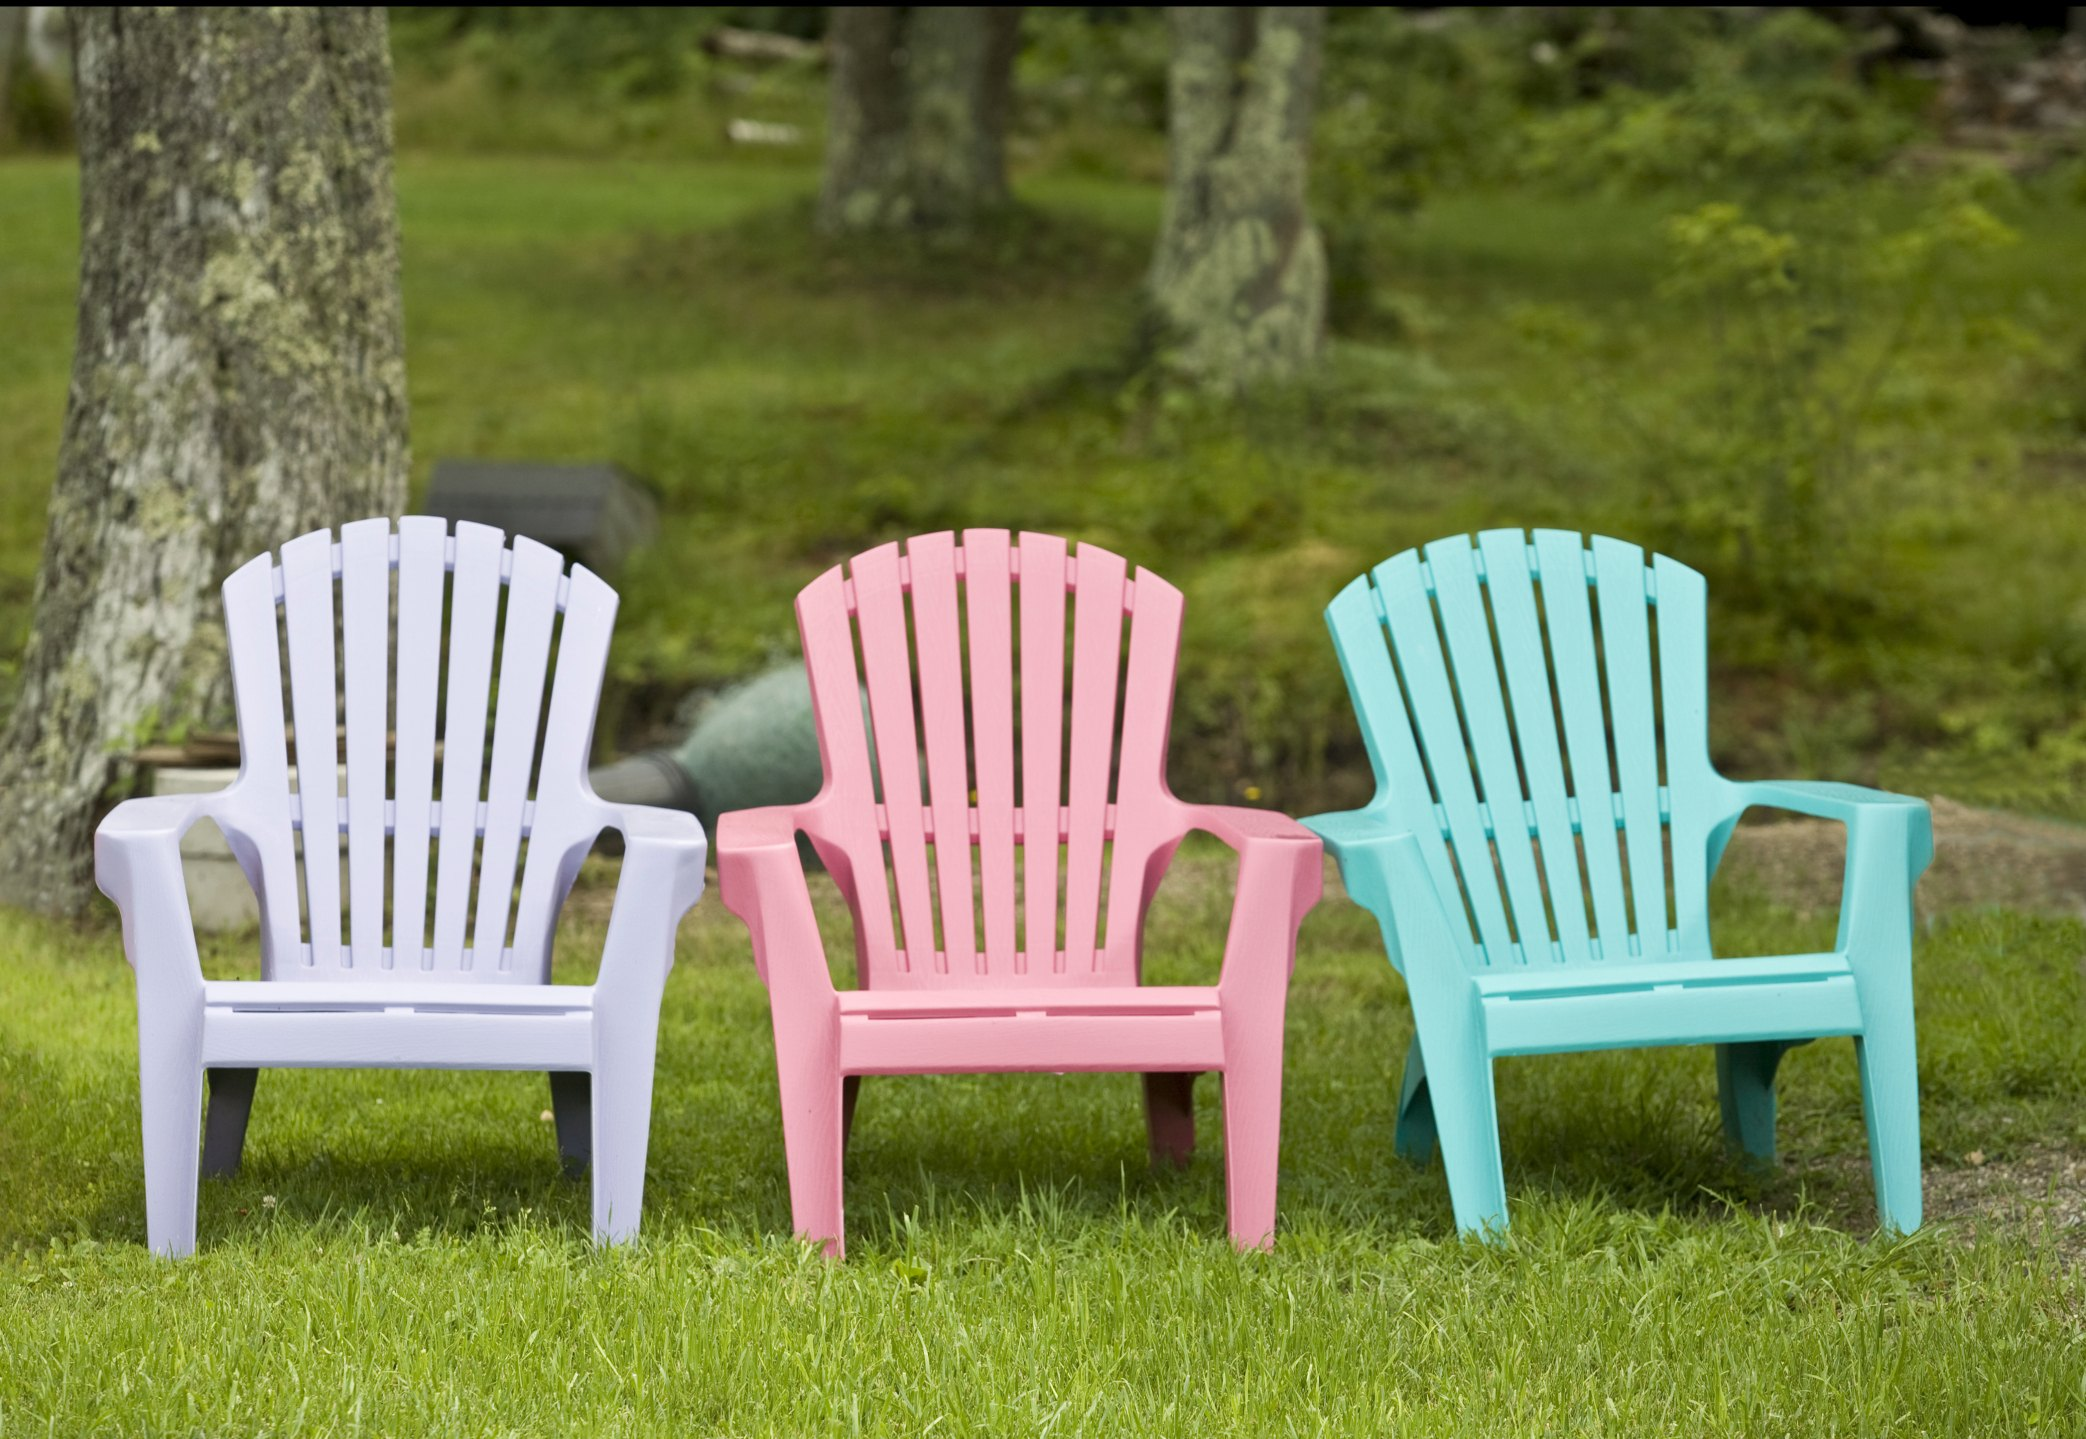 How To Paint Plastic Lawn Chairs Ehow